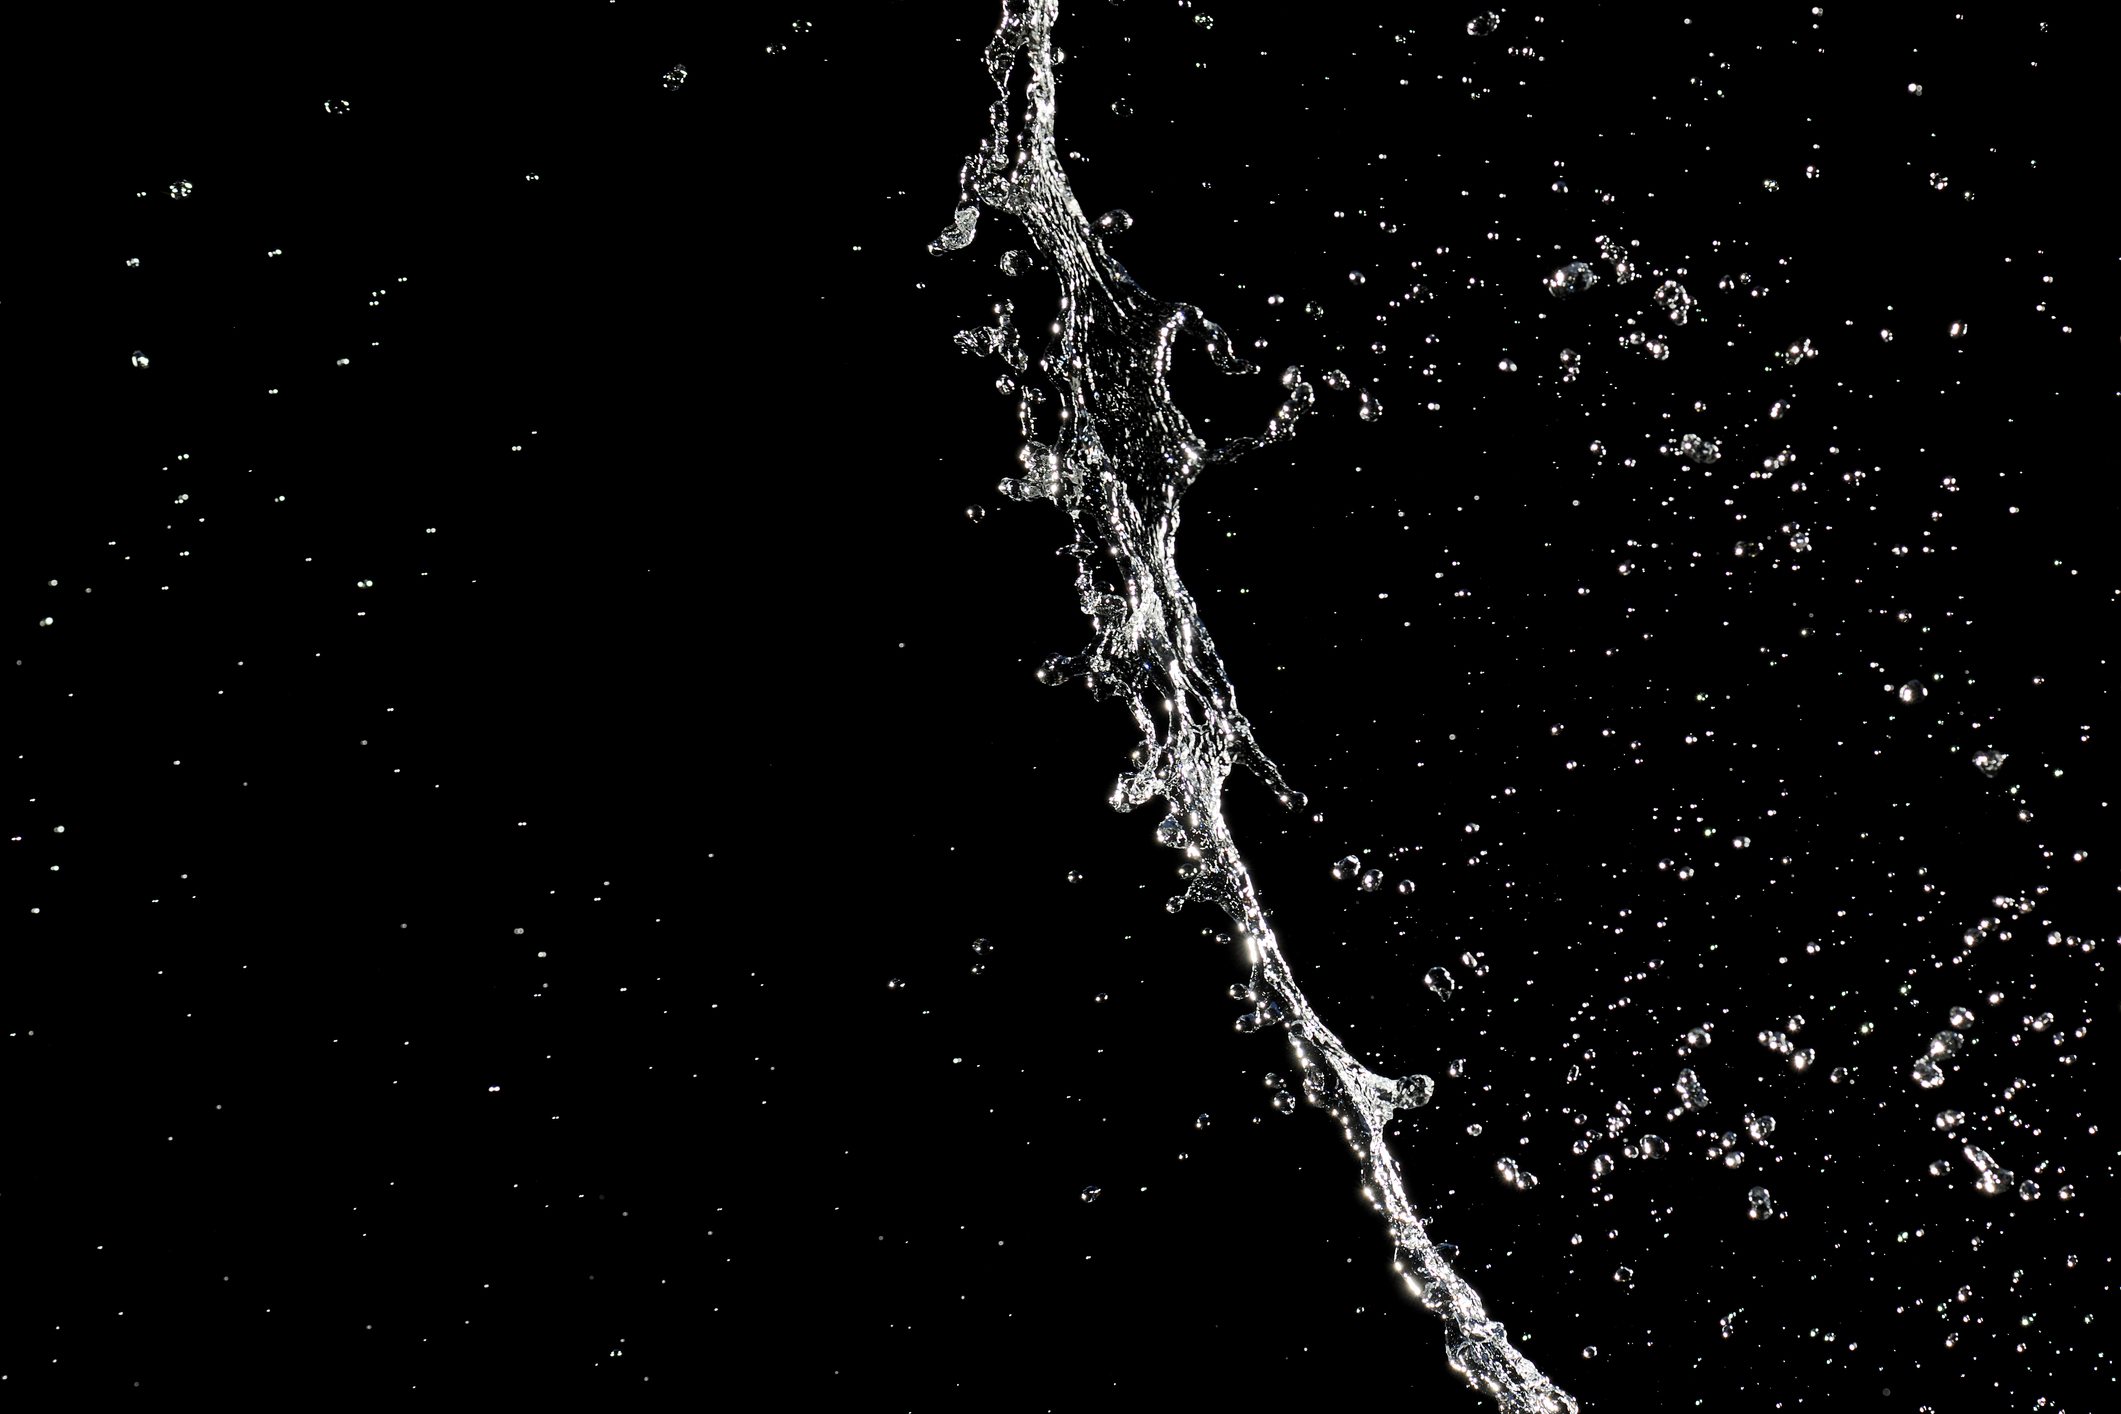 Water splashing against a black background.